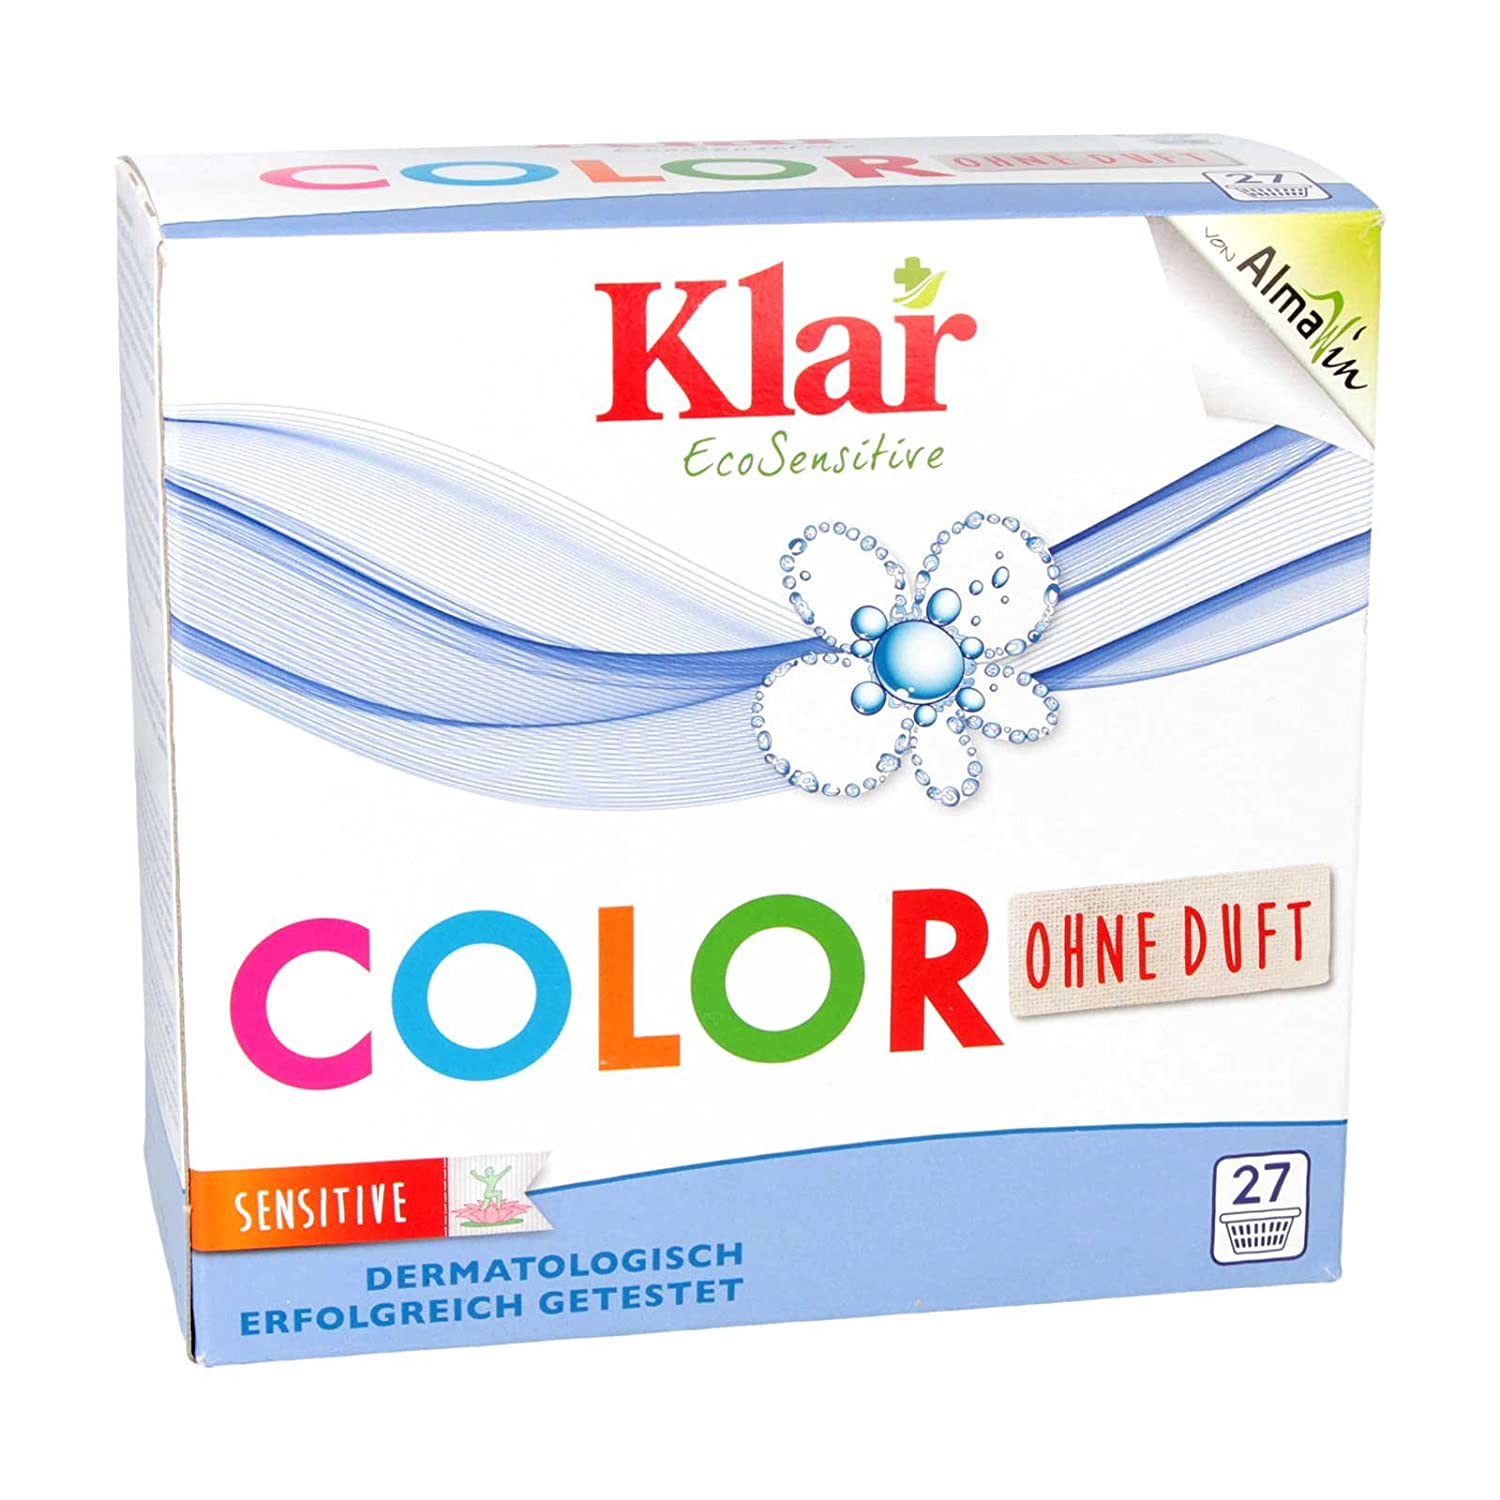 Klar Laundry Detergent Fragrance Free by Klar: Amazon.es ...